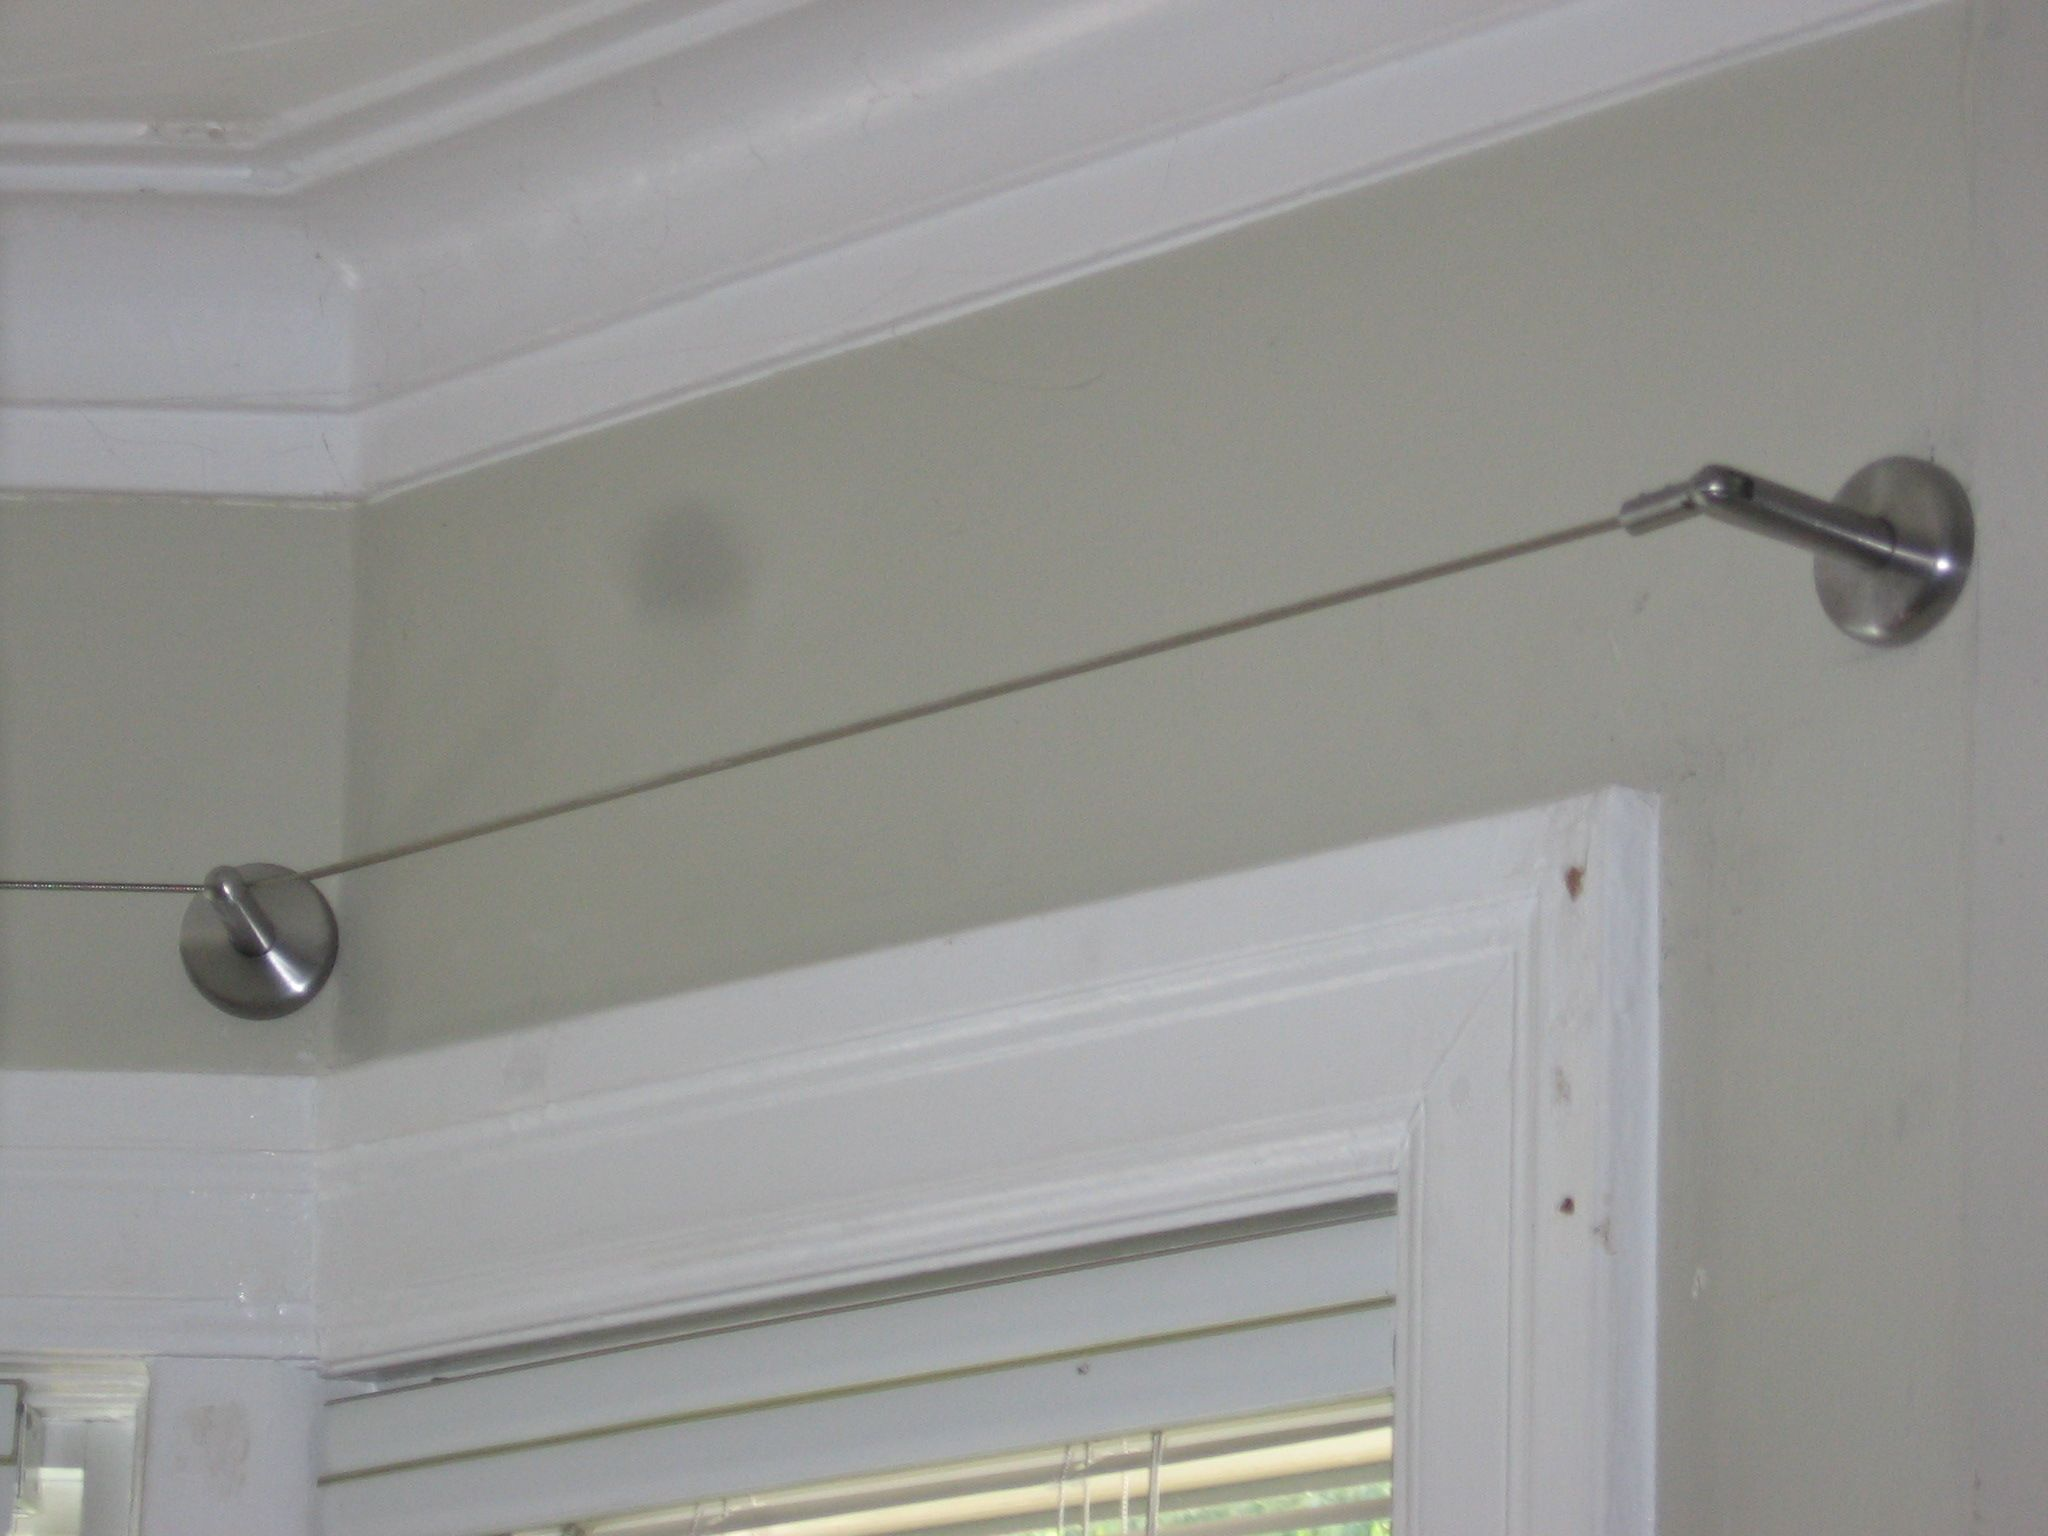 Ikea Curtain Wire Rod Hanging System Stainless Steel | Pinterest ...